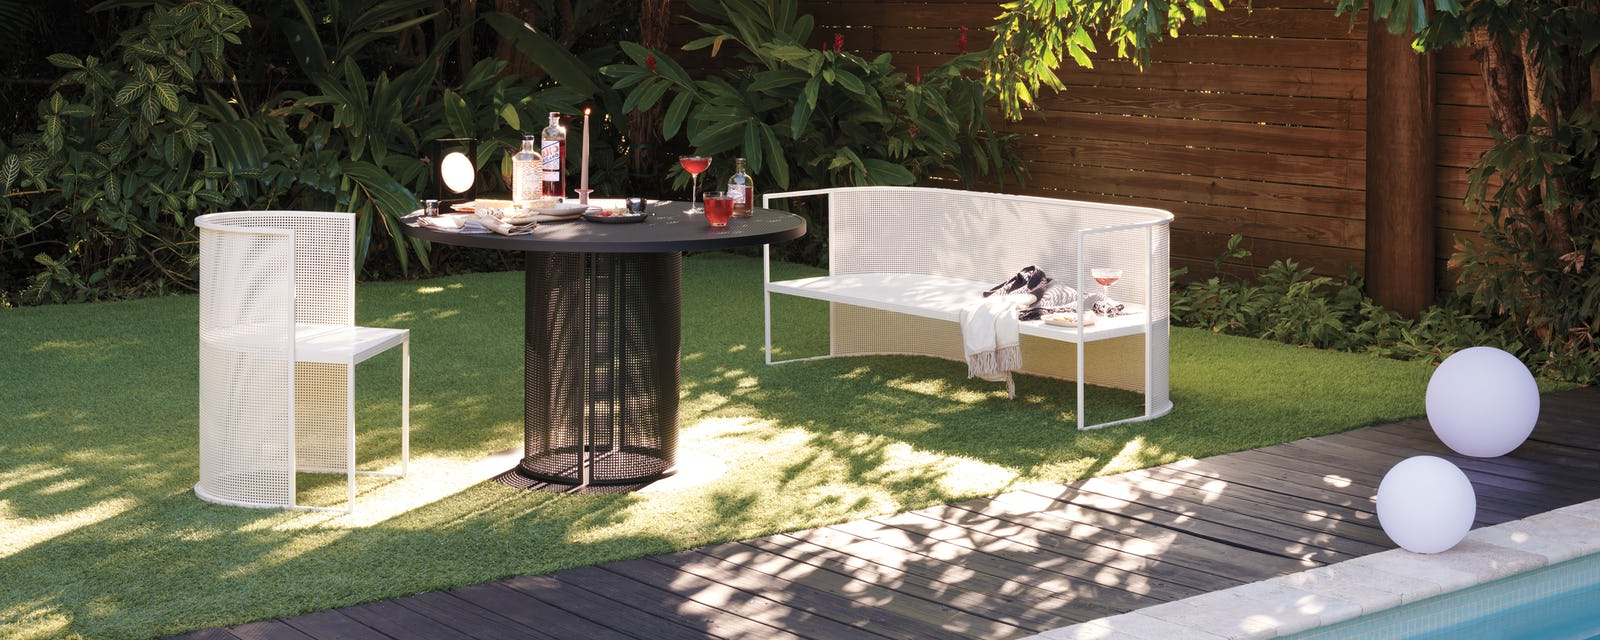 Design Within Reach outdoor furnishings